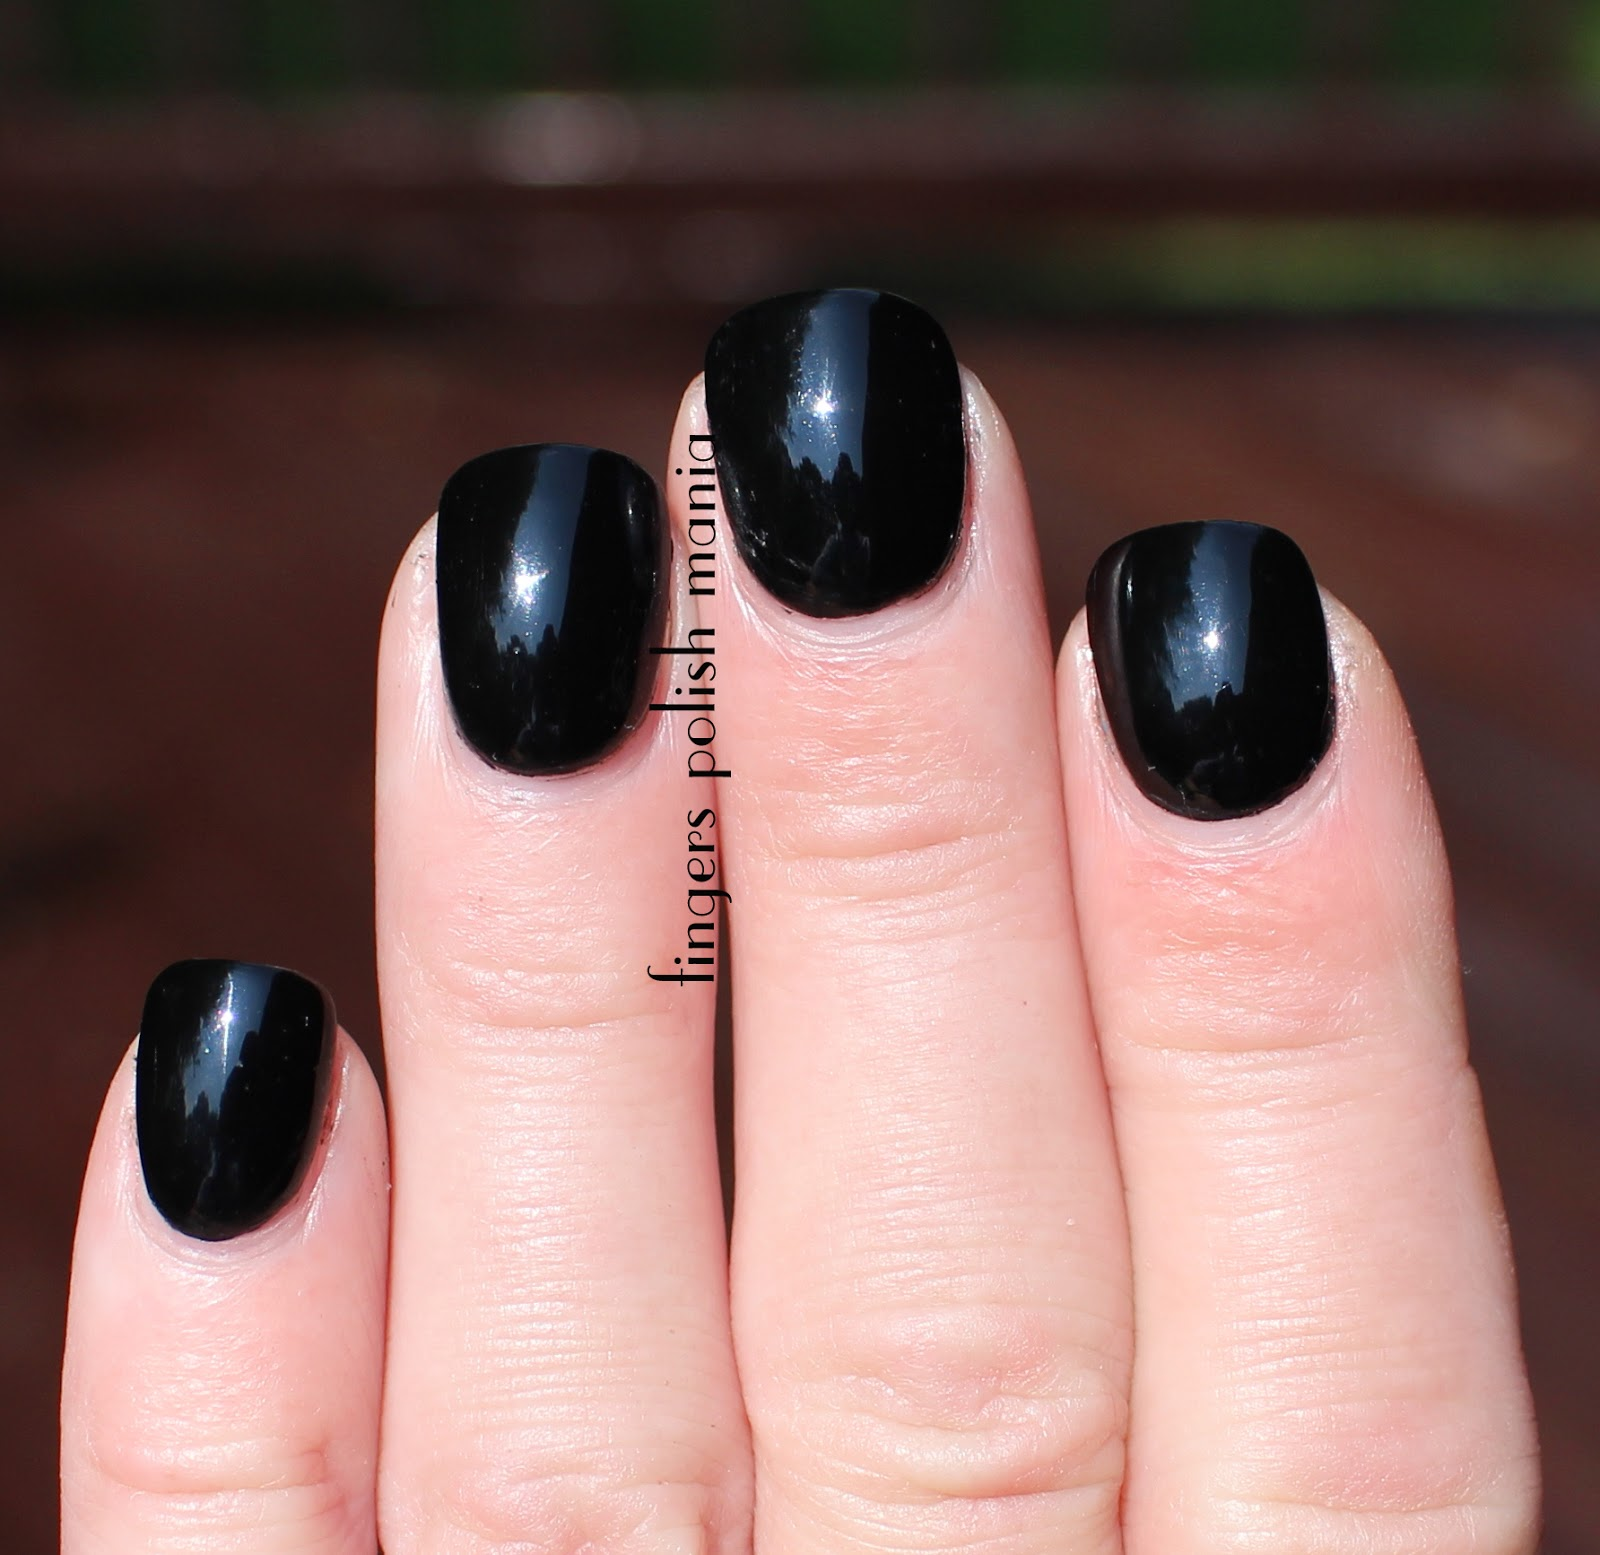 Amazing Black Nexgen Nails Image - Nail Art Design Ideas ...